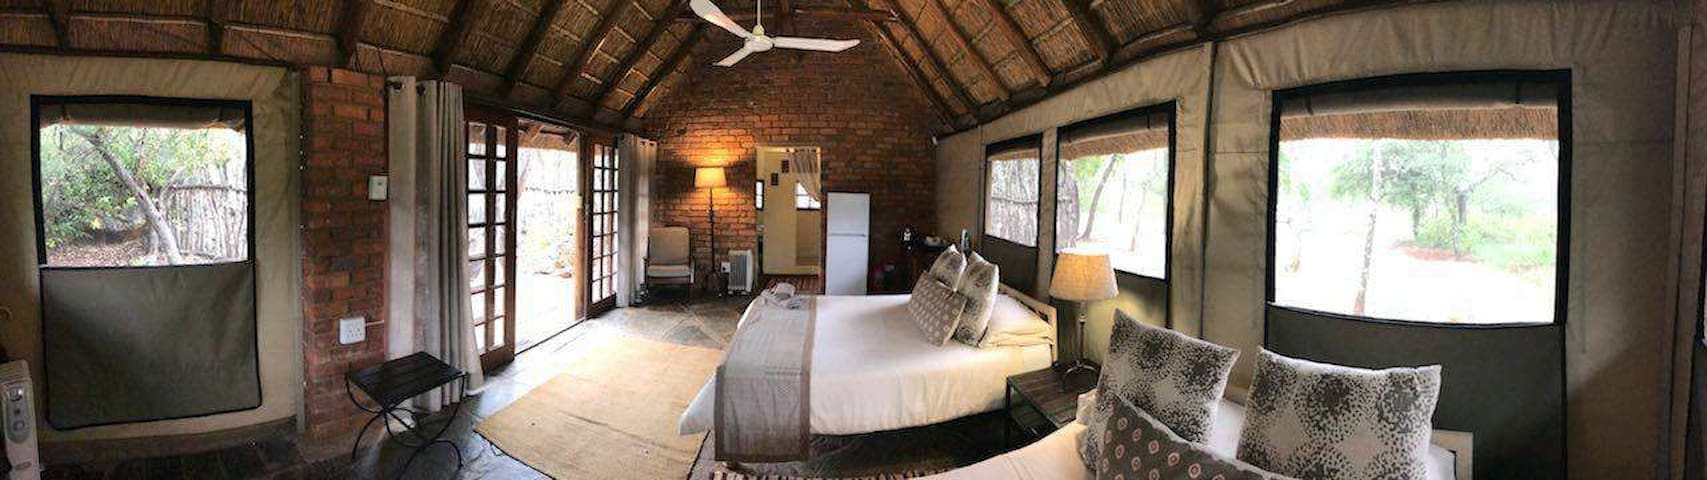 Bonwa Phala Game Lodge - Bush Camp